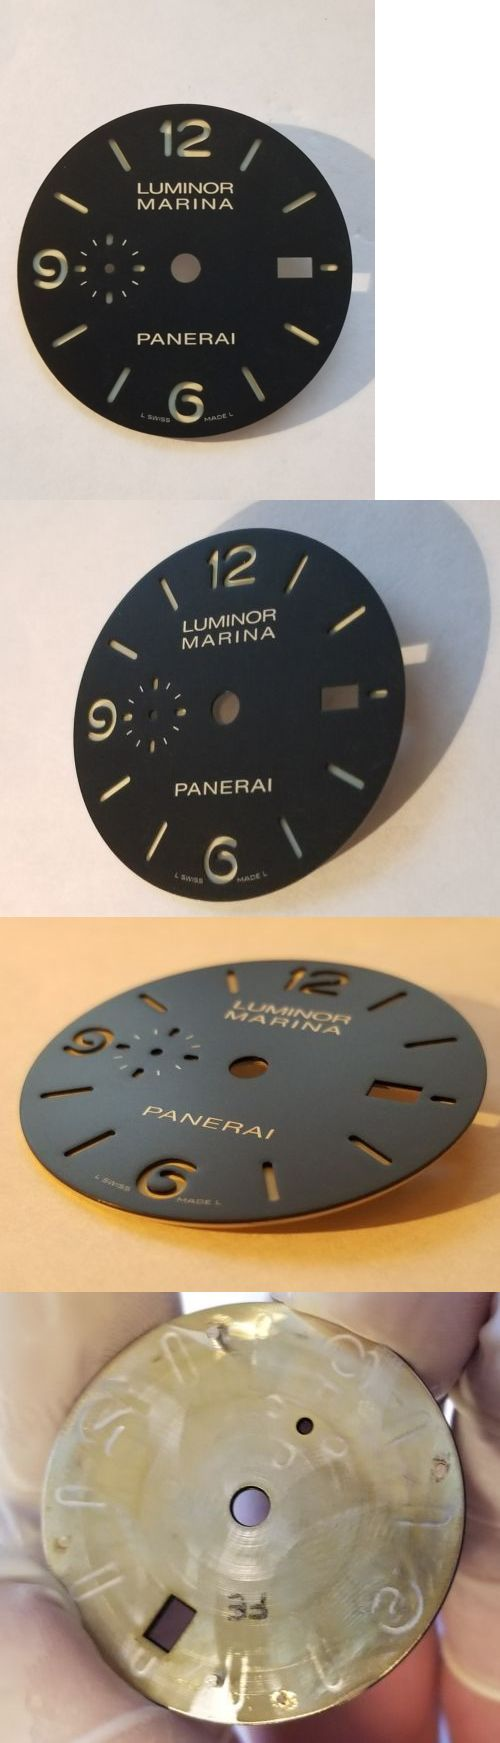 Other Watch Parts 10324: Genuine Panerai 312 1950 Luminor Sandwich Dial -> BUY IT NOW ONLY: $459 on eBay!